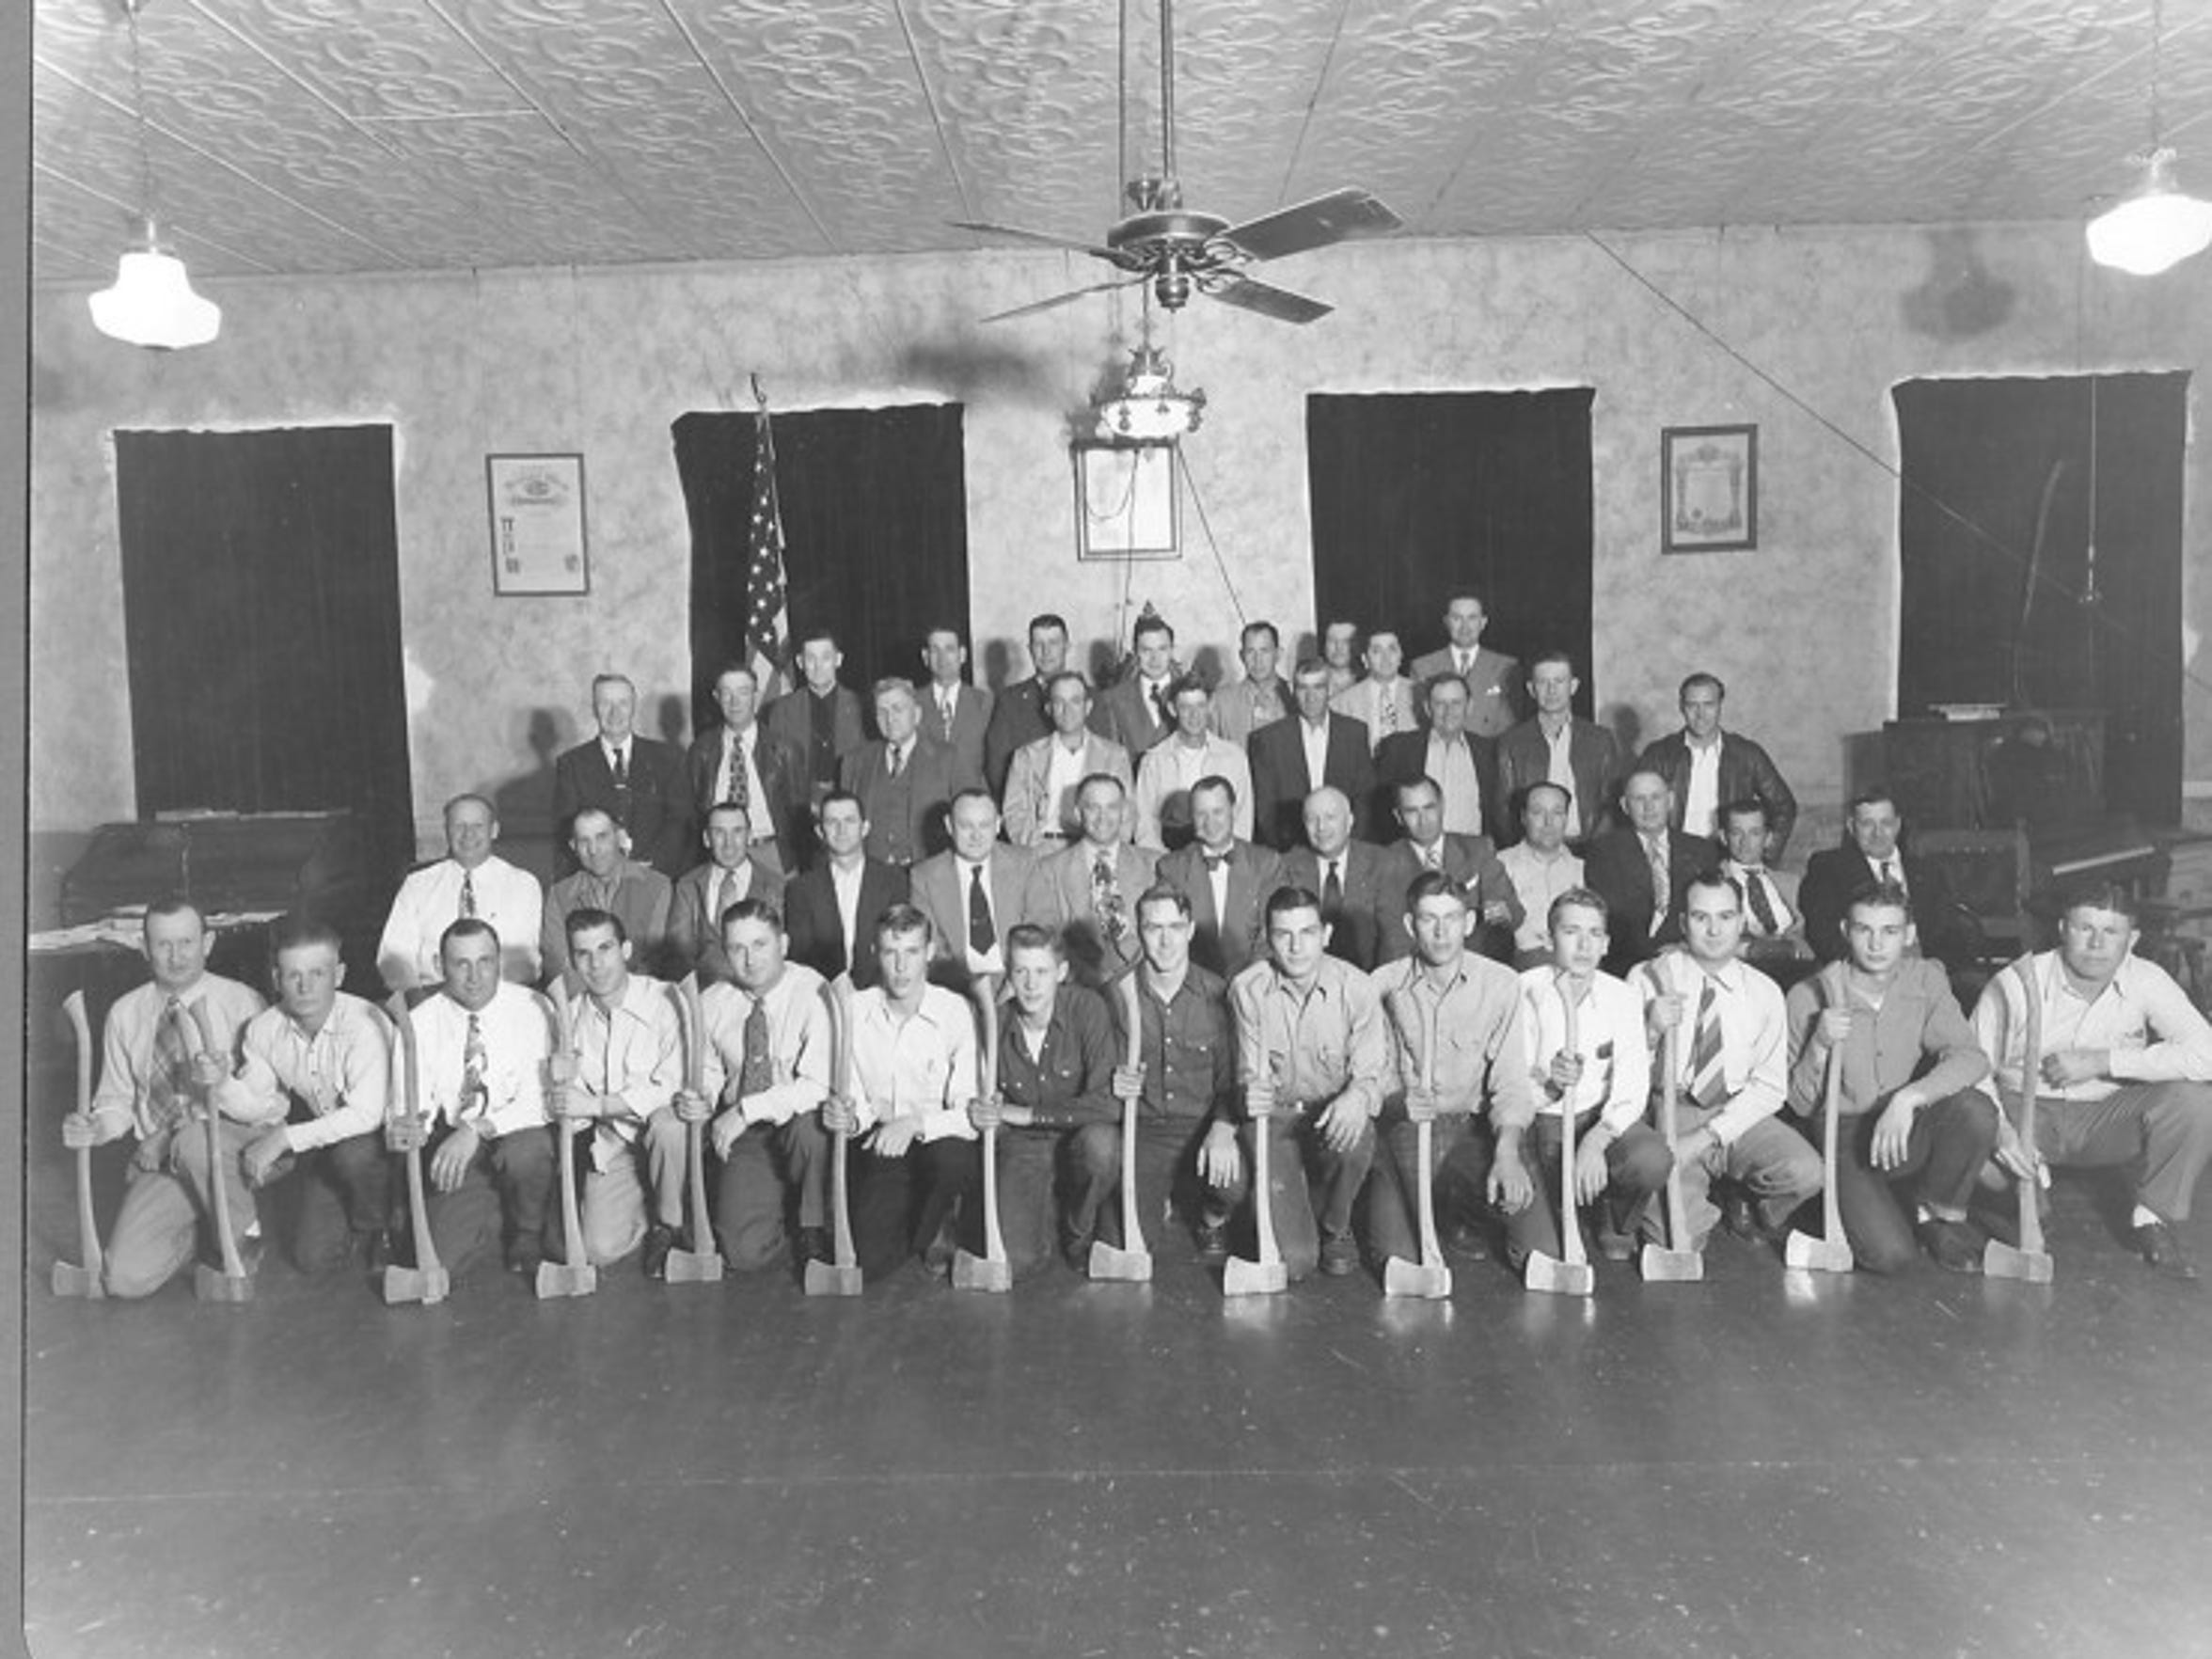 An old photo of the Woodmen of the World group of 30